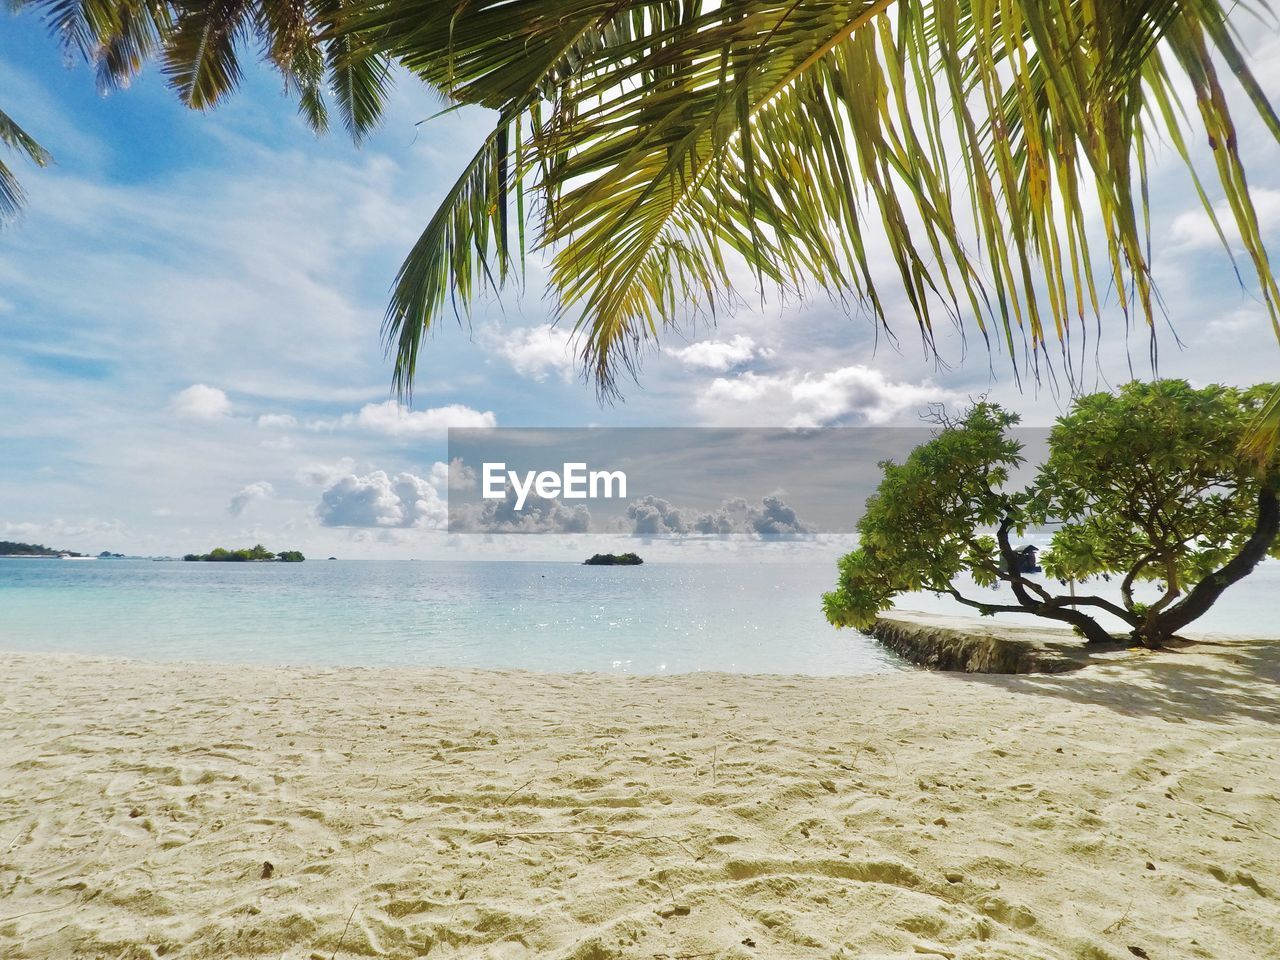 tree, water, beach, sea, land, sky, beauty in nature, tropical climate, scenics - nature, cloud - sky, tranquility, palm tree, plant, tranquil scene, sand, nature, no people, day, horizon over water, palm leaf, coconut palm tree, tropical tree